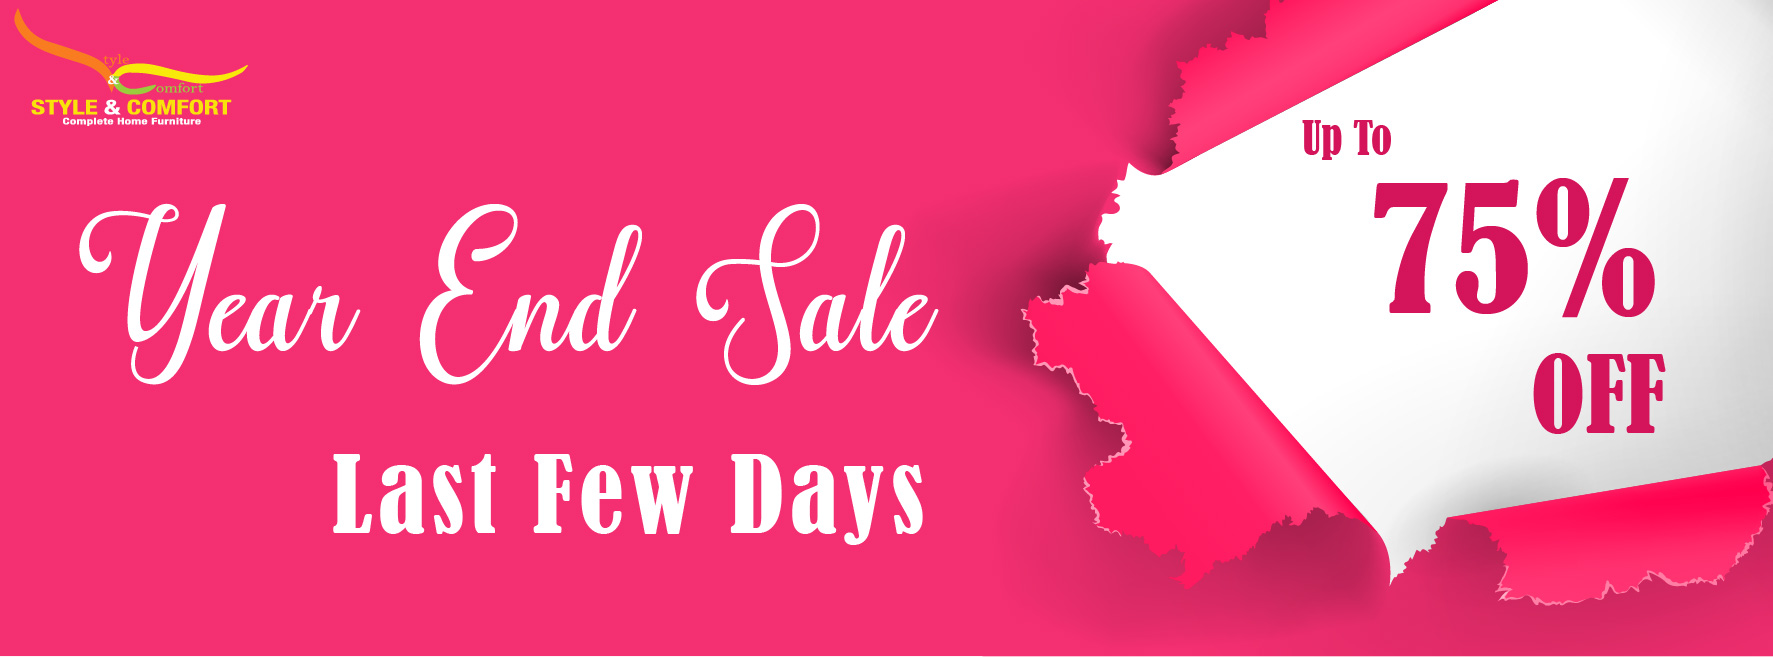 Style & Comfort - Year End Sale